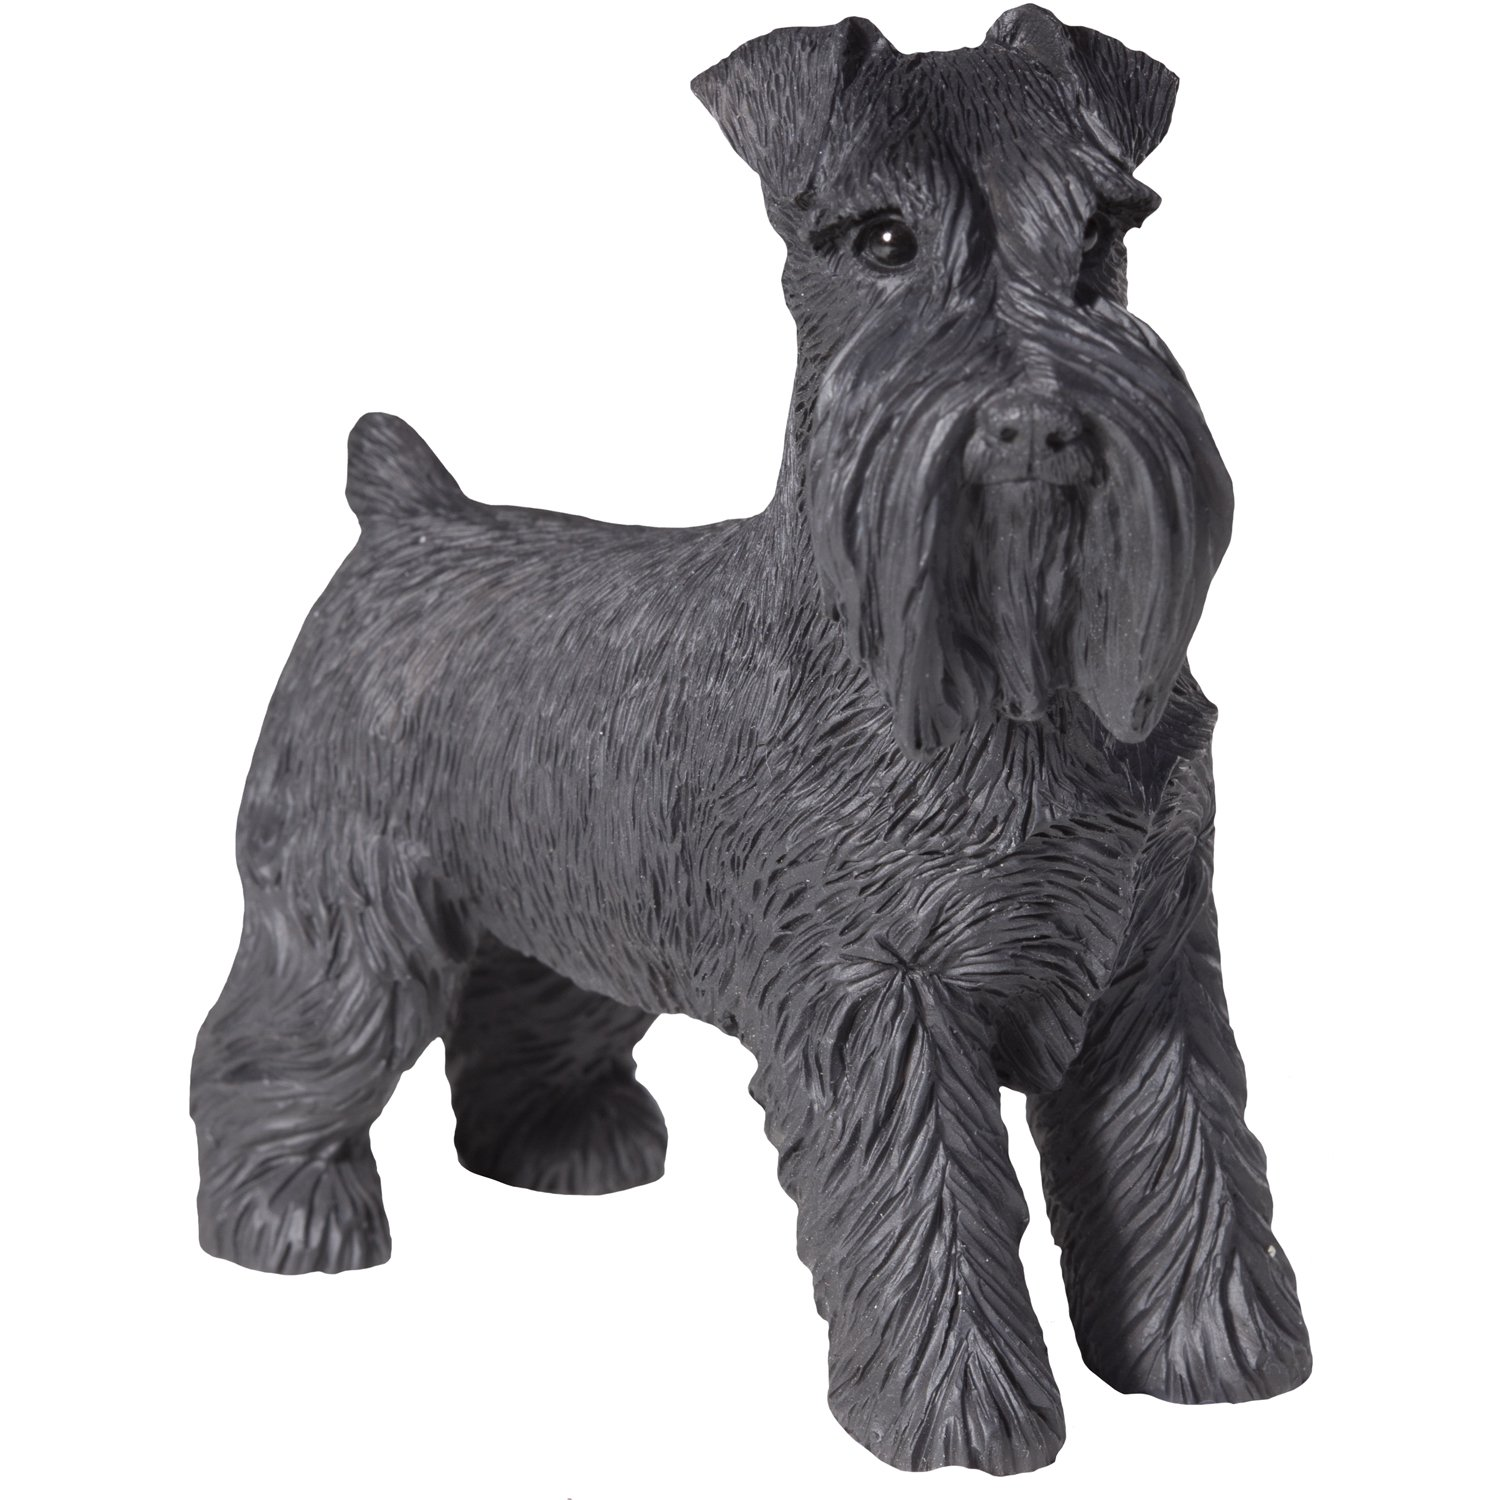 Sandicast Black Schnauzer with Uncropped Ears Sculpture, Standing, Small Size